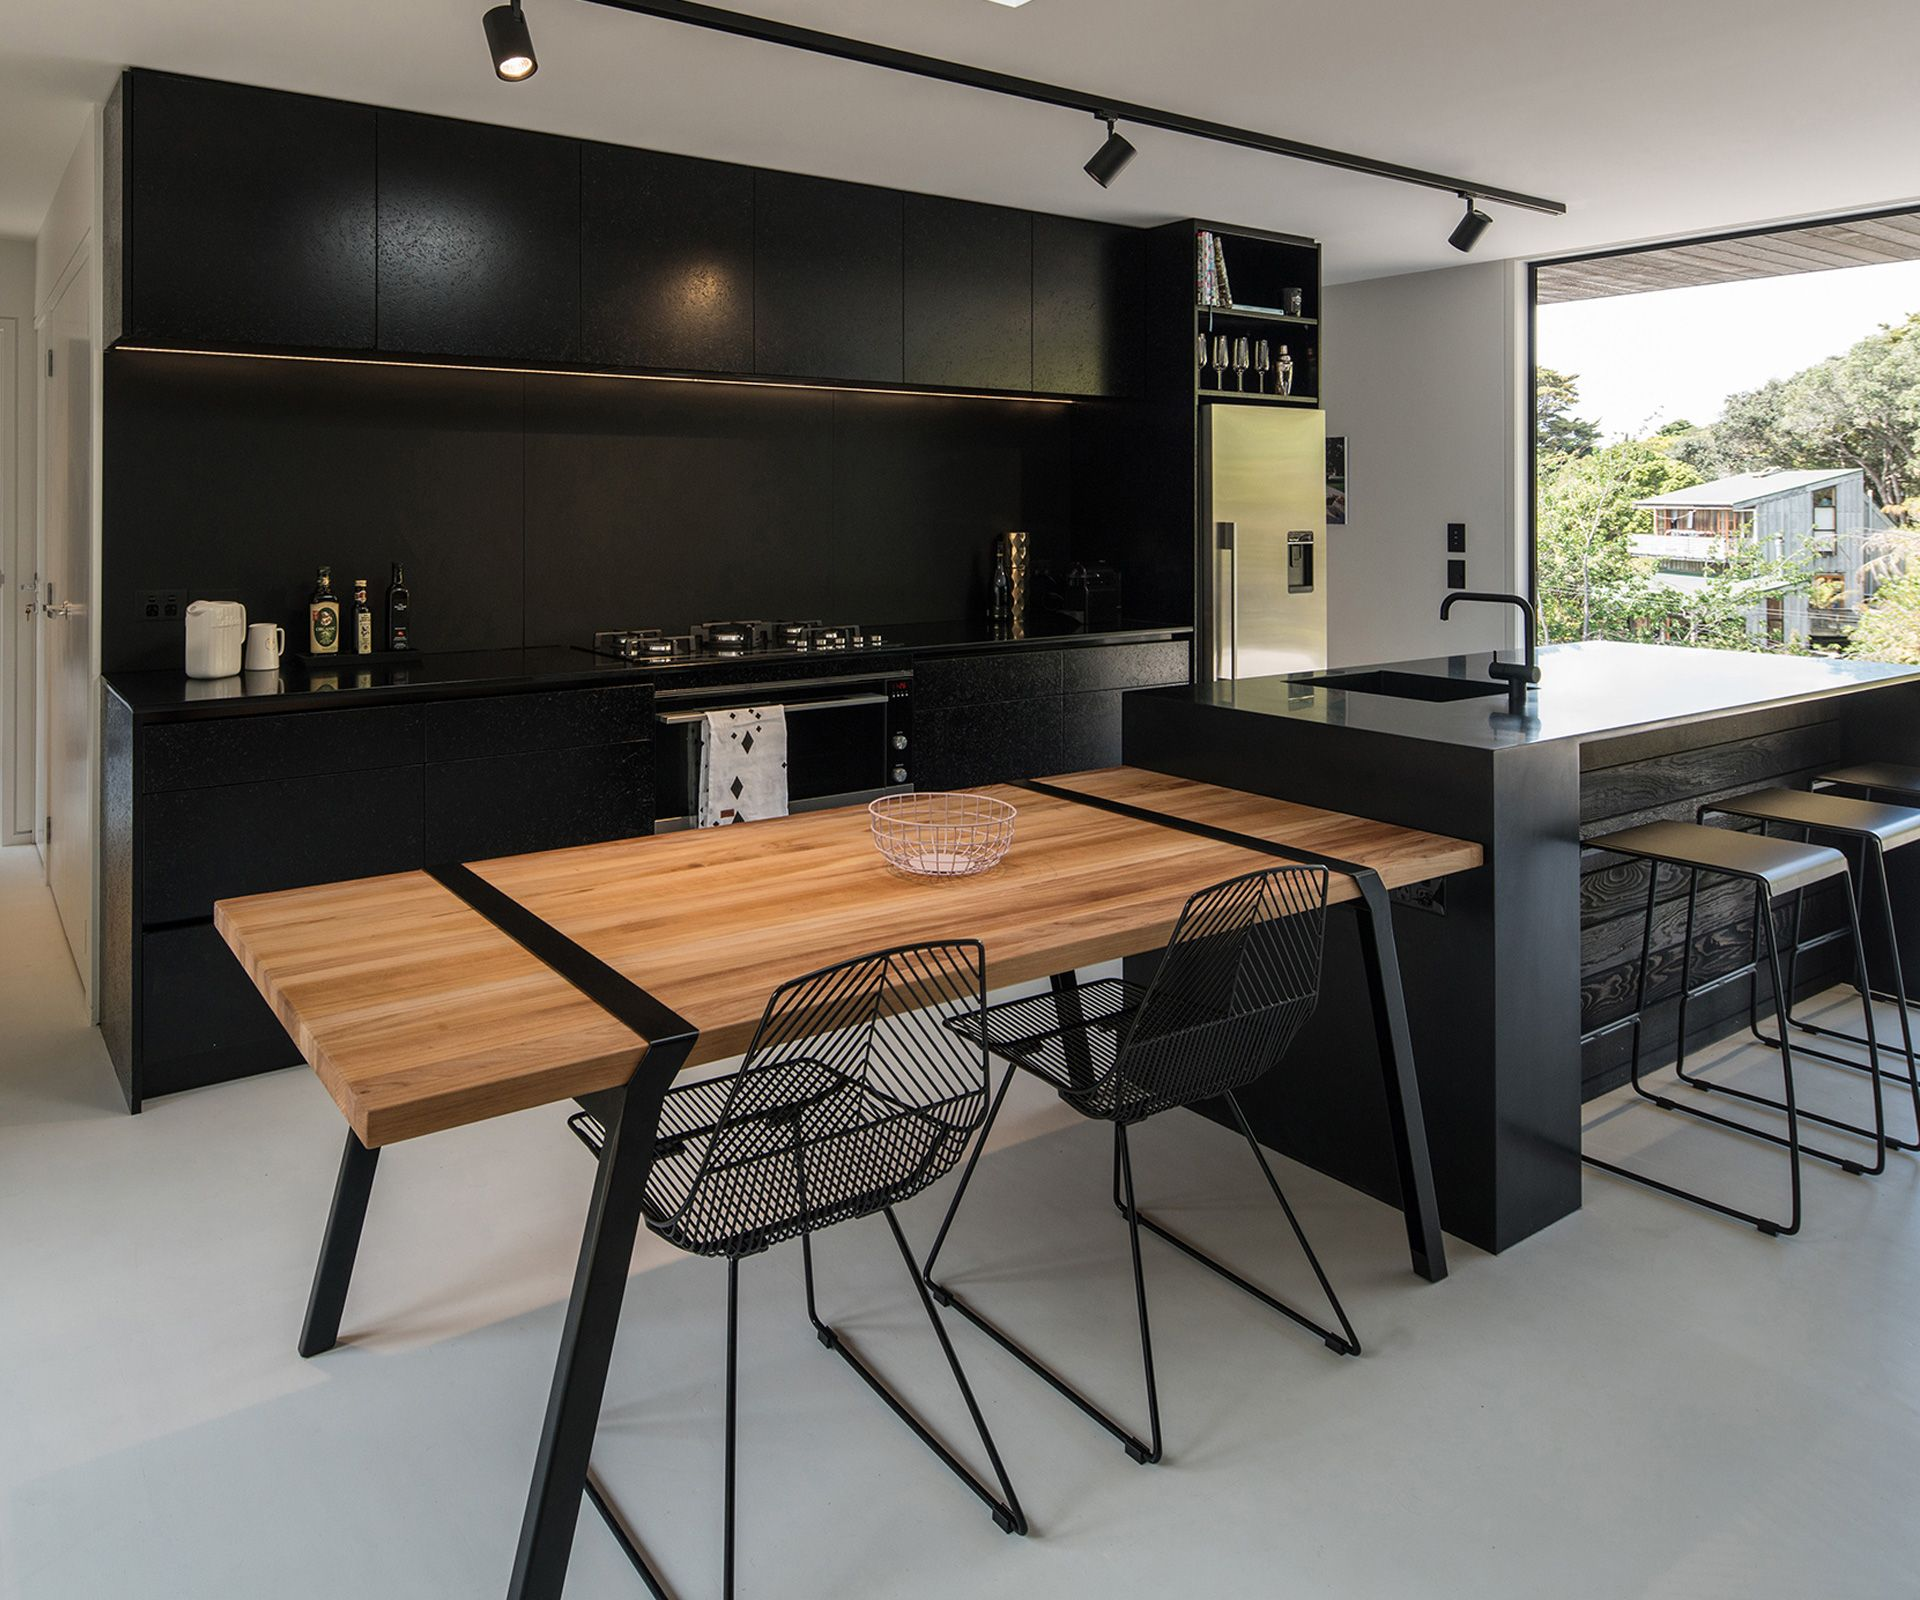 How to design a kitchen that works for you and your family